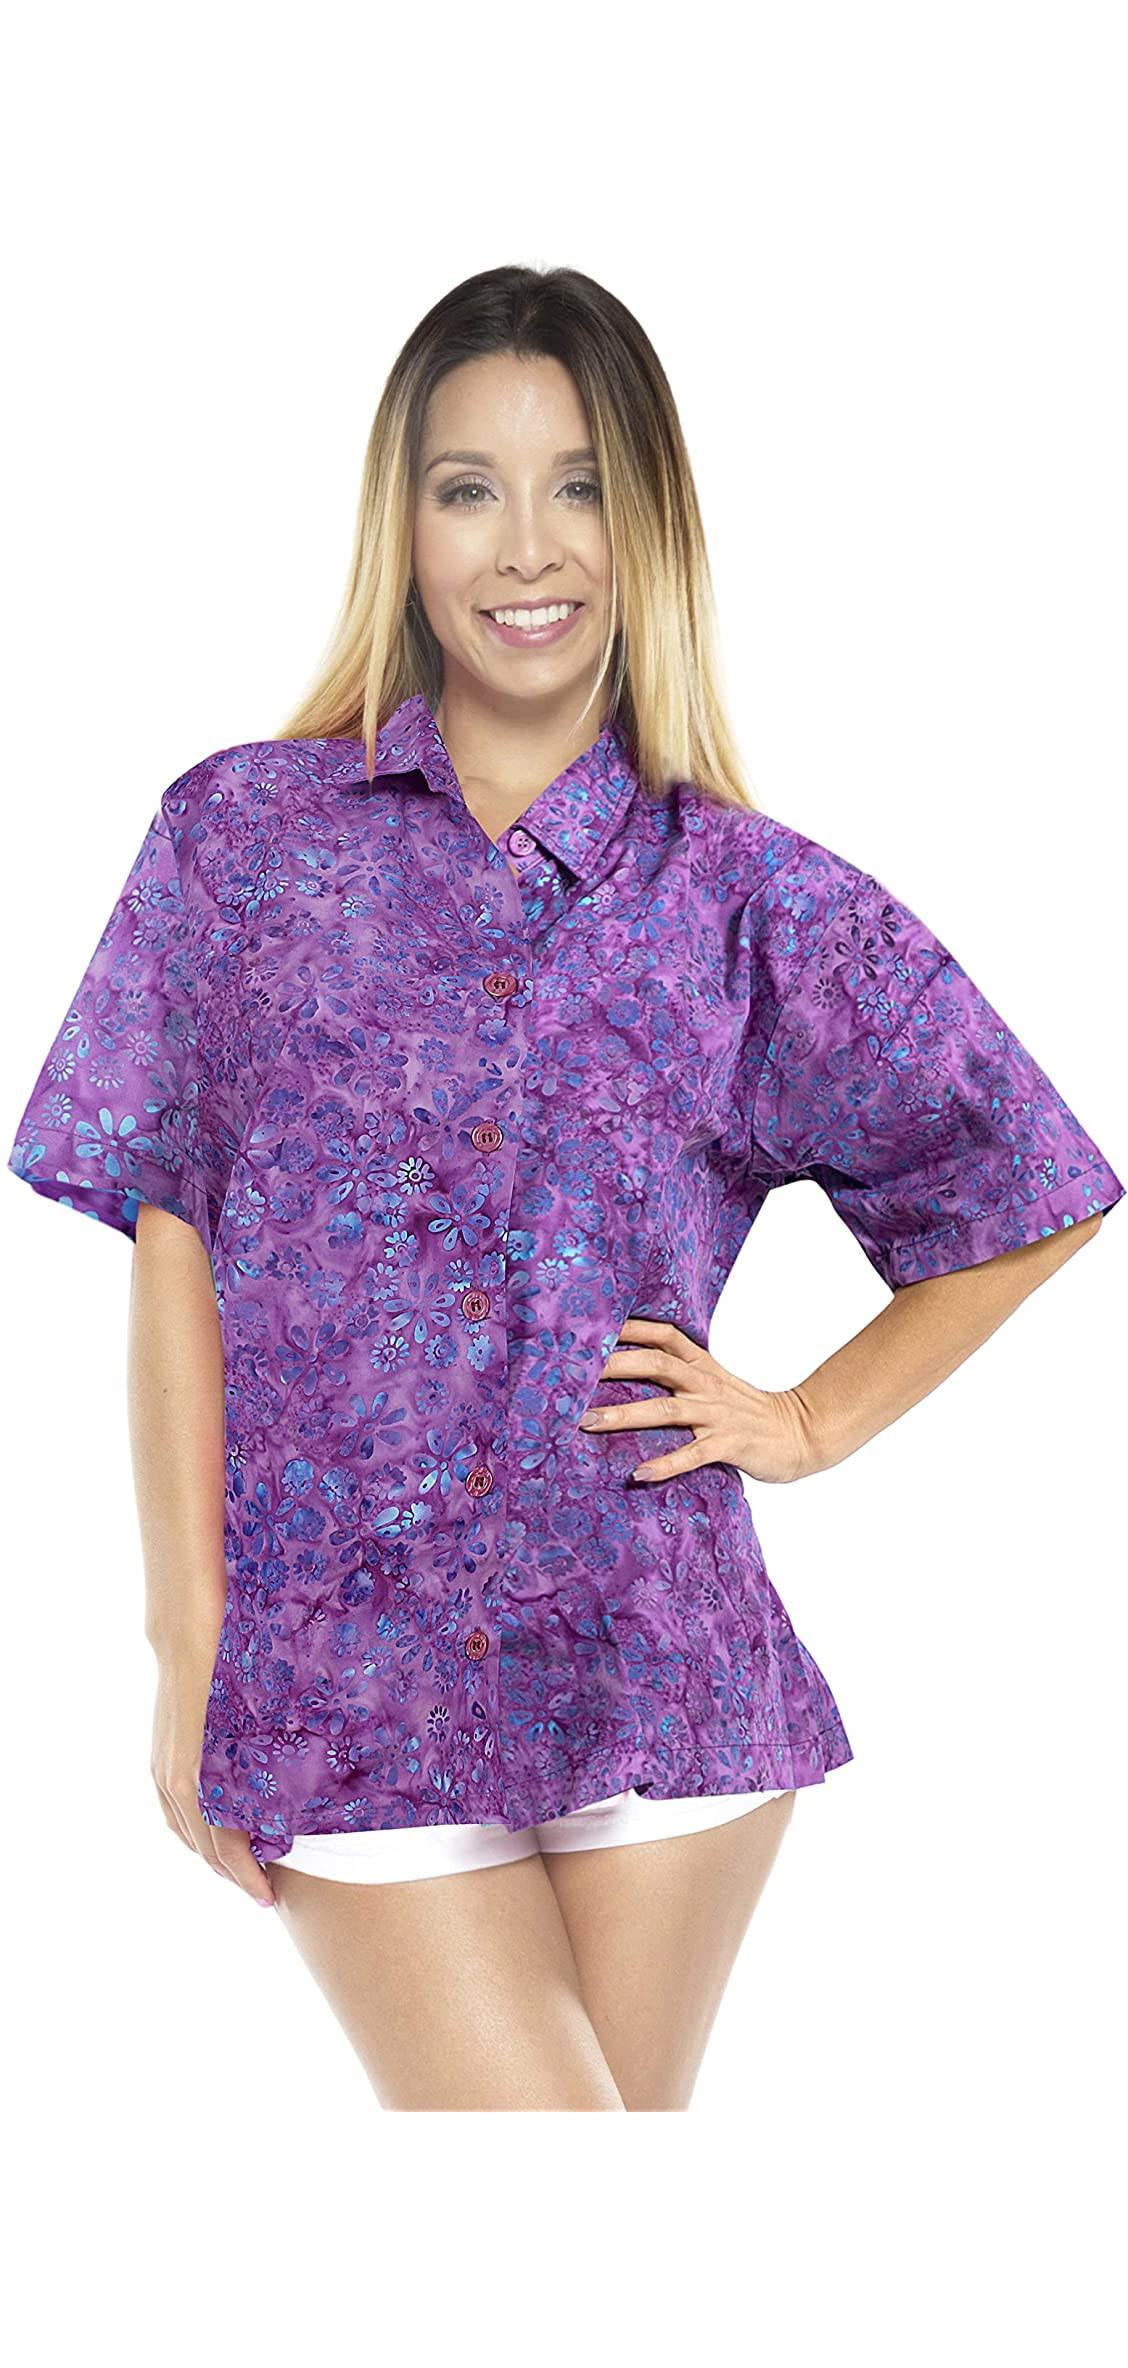 Women's Summer Top Beach Aloha Short Sleeve Camp Casual